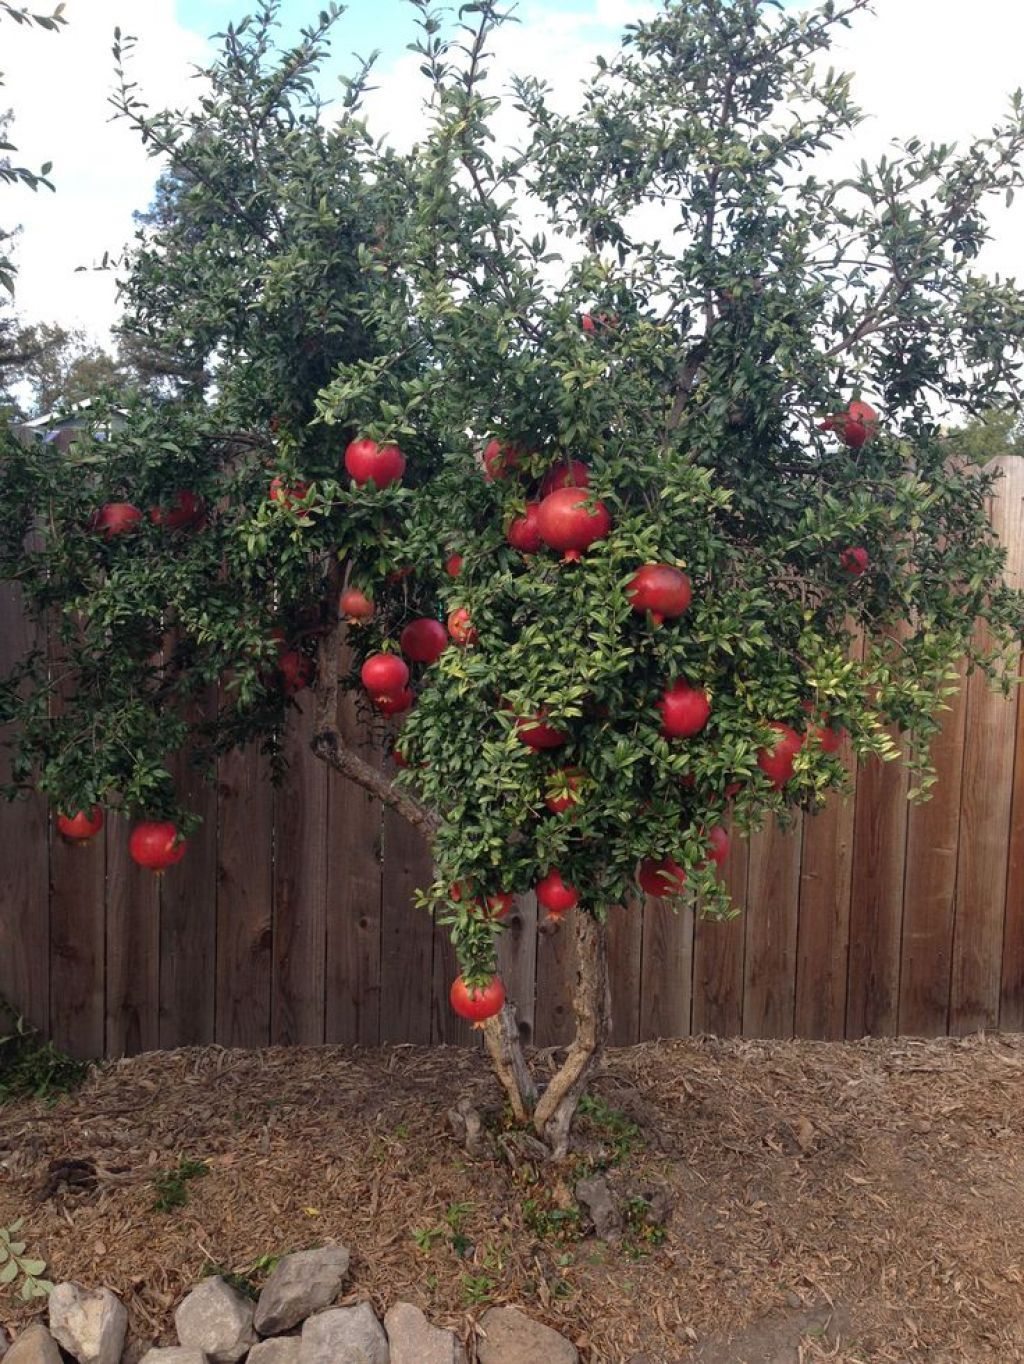 Backyard Garden With Wooden Fences And Pomegranate Tree ...